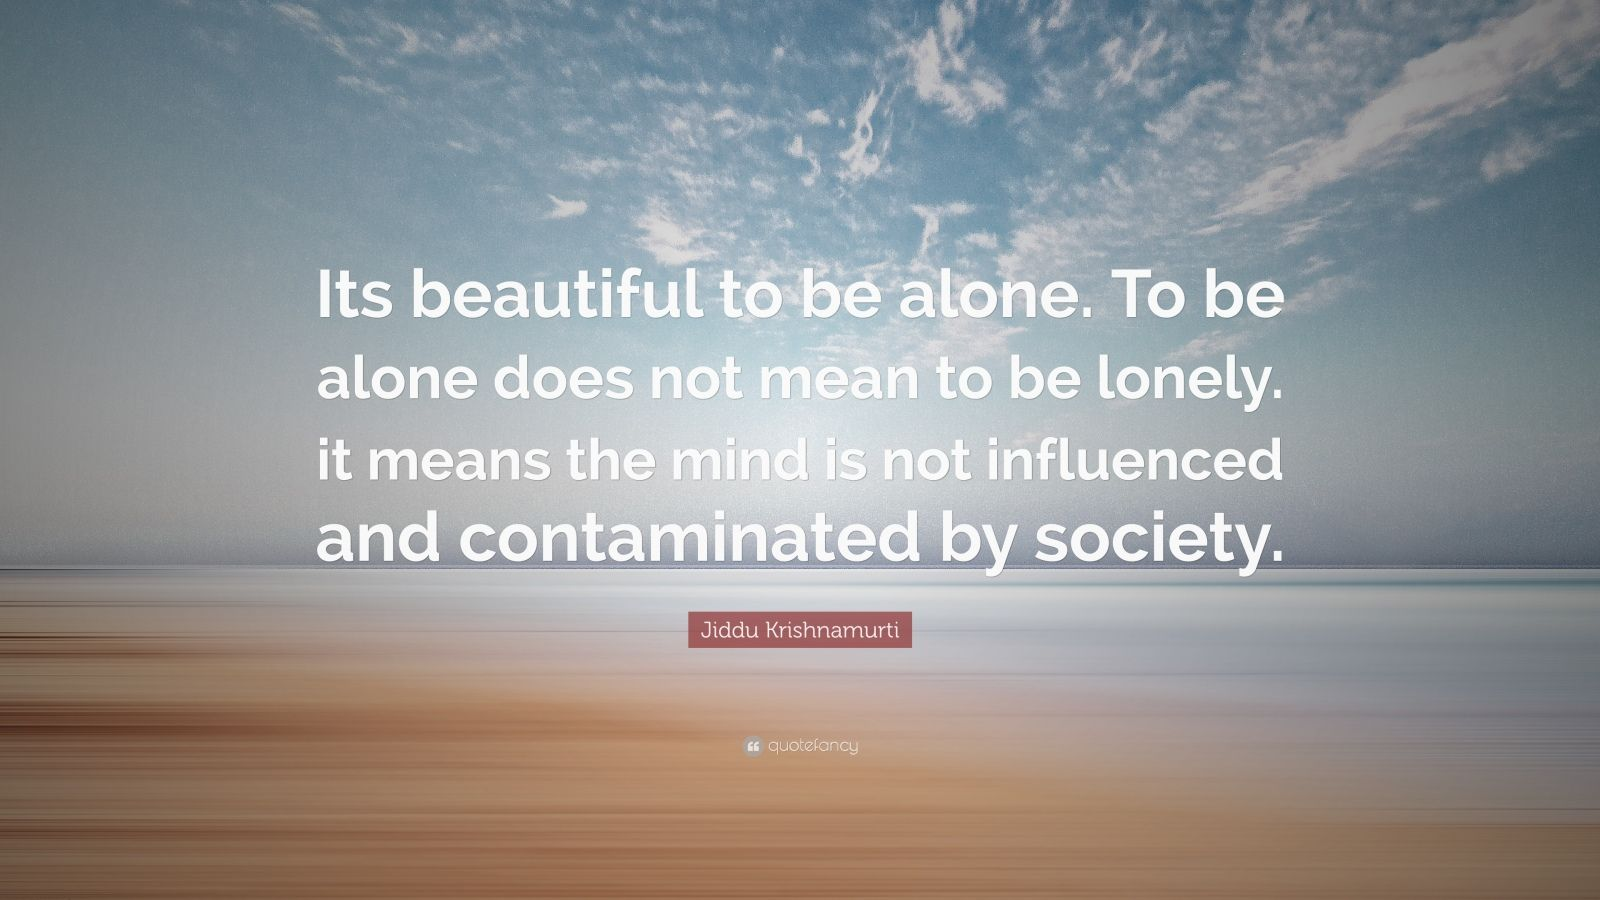 "Lonely Quotes: ""Its beautiful to be alone. To be alone does not mean to be lonely. it means the mind is not influenced and contaminated by society."" — Jiddu Krishnamurti"